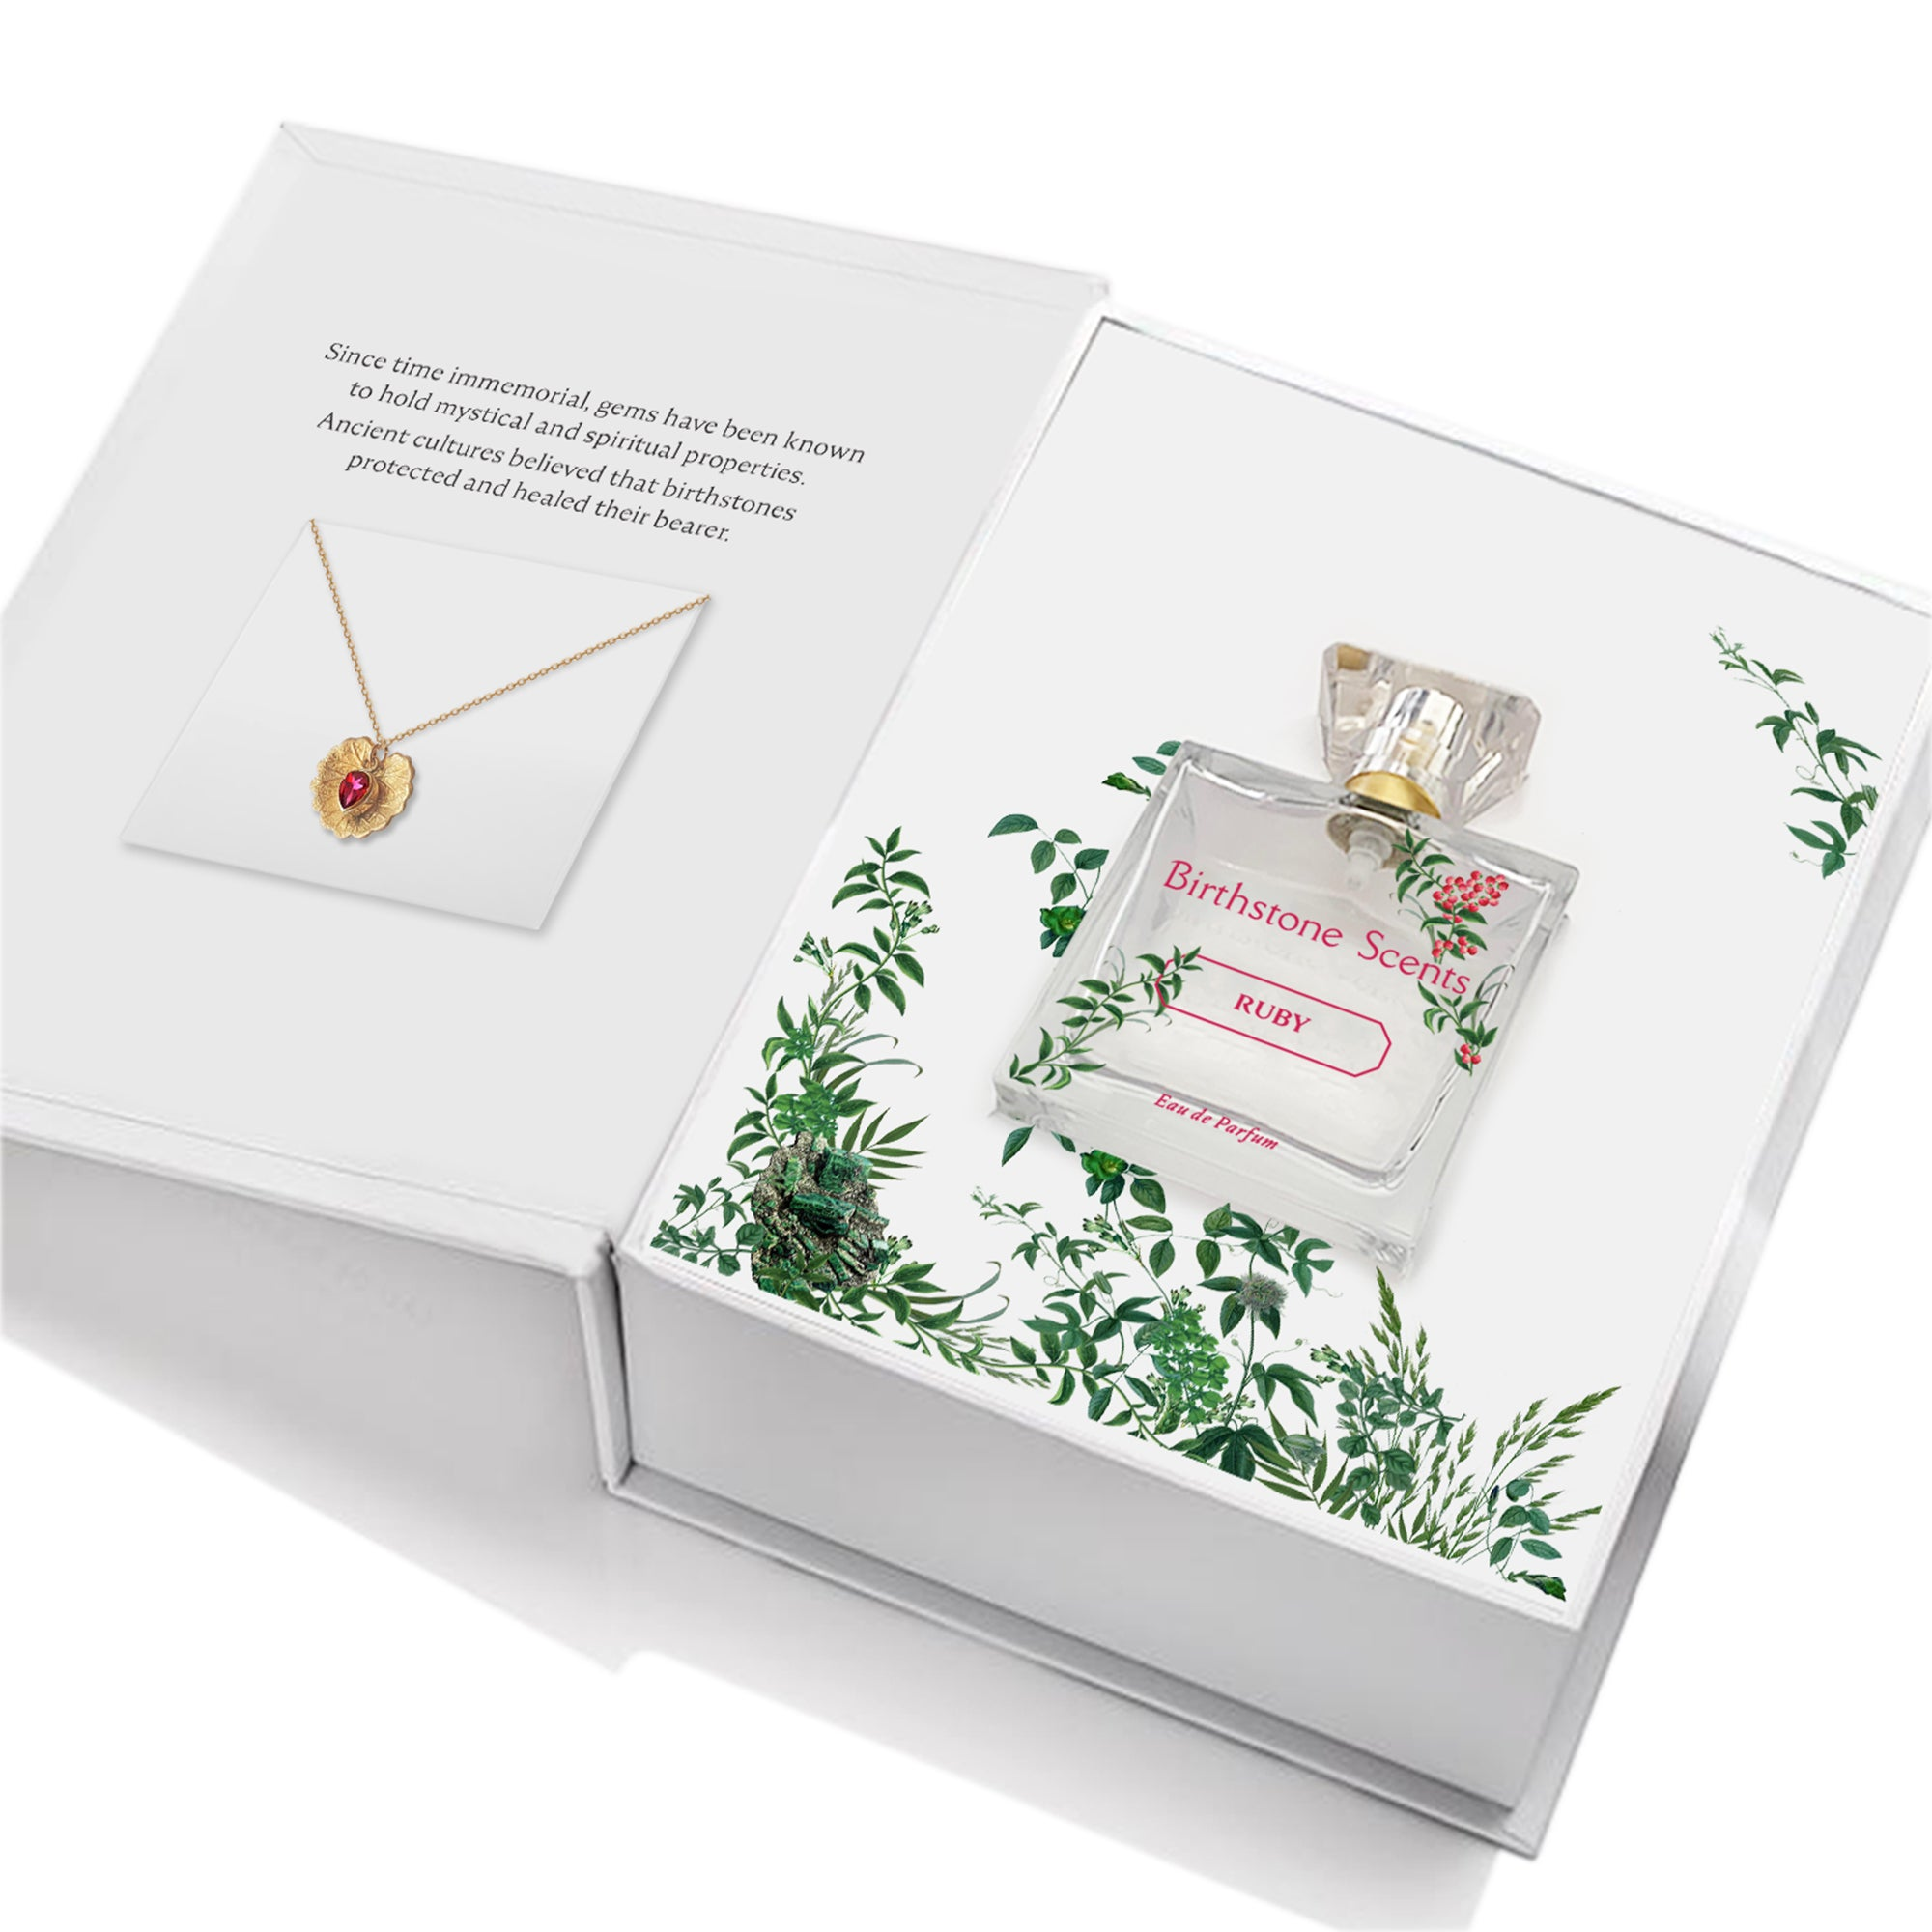 RUBY PERFUME WITH NECKLACE | July - Birthstone Scents